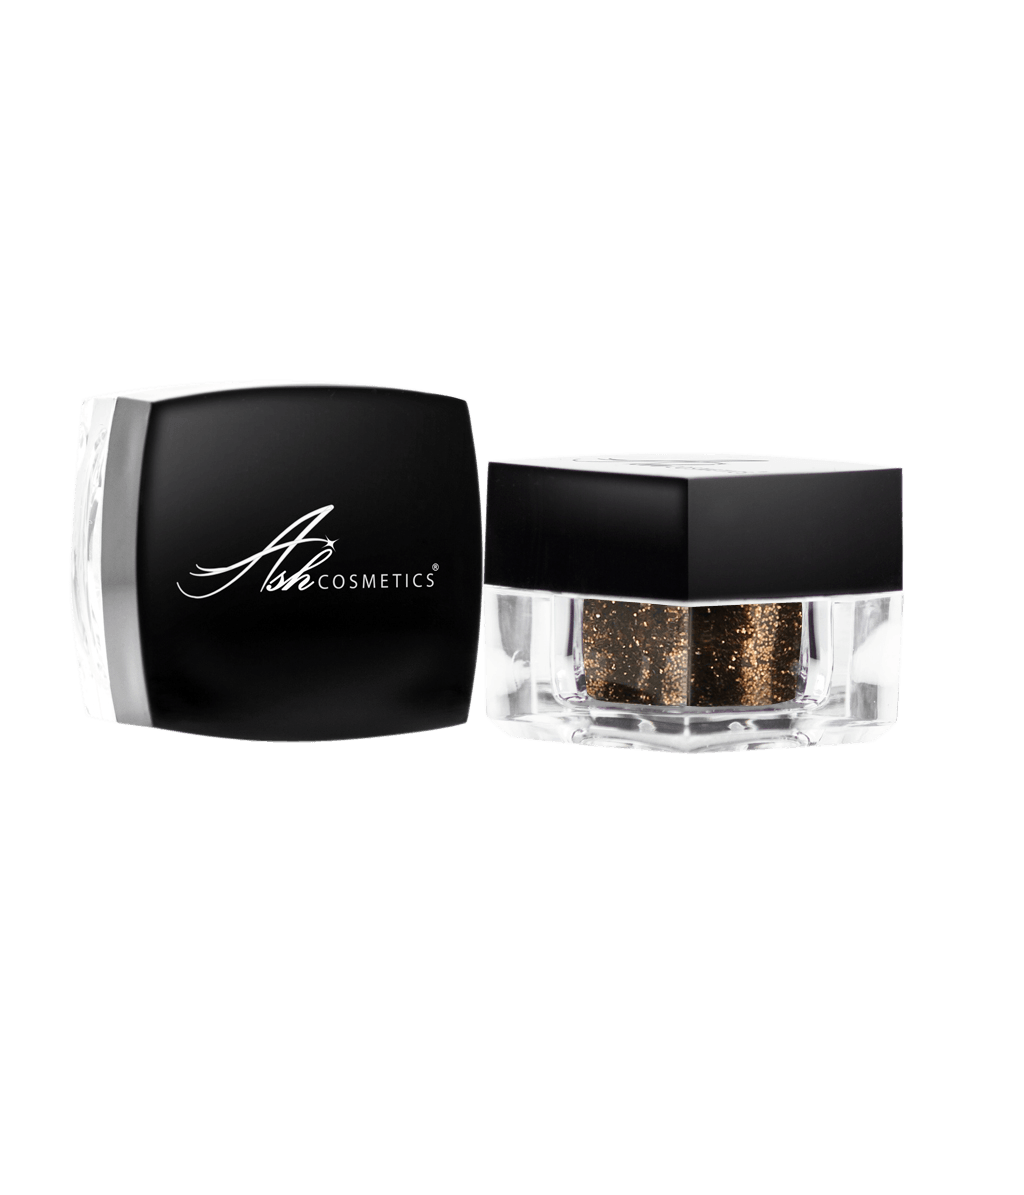 Glitter Eyeshadow Bronze - Ashcosmetics